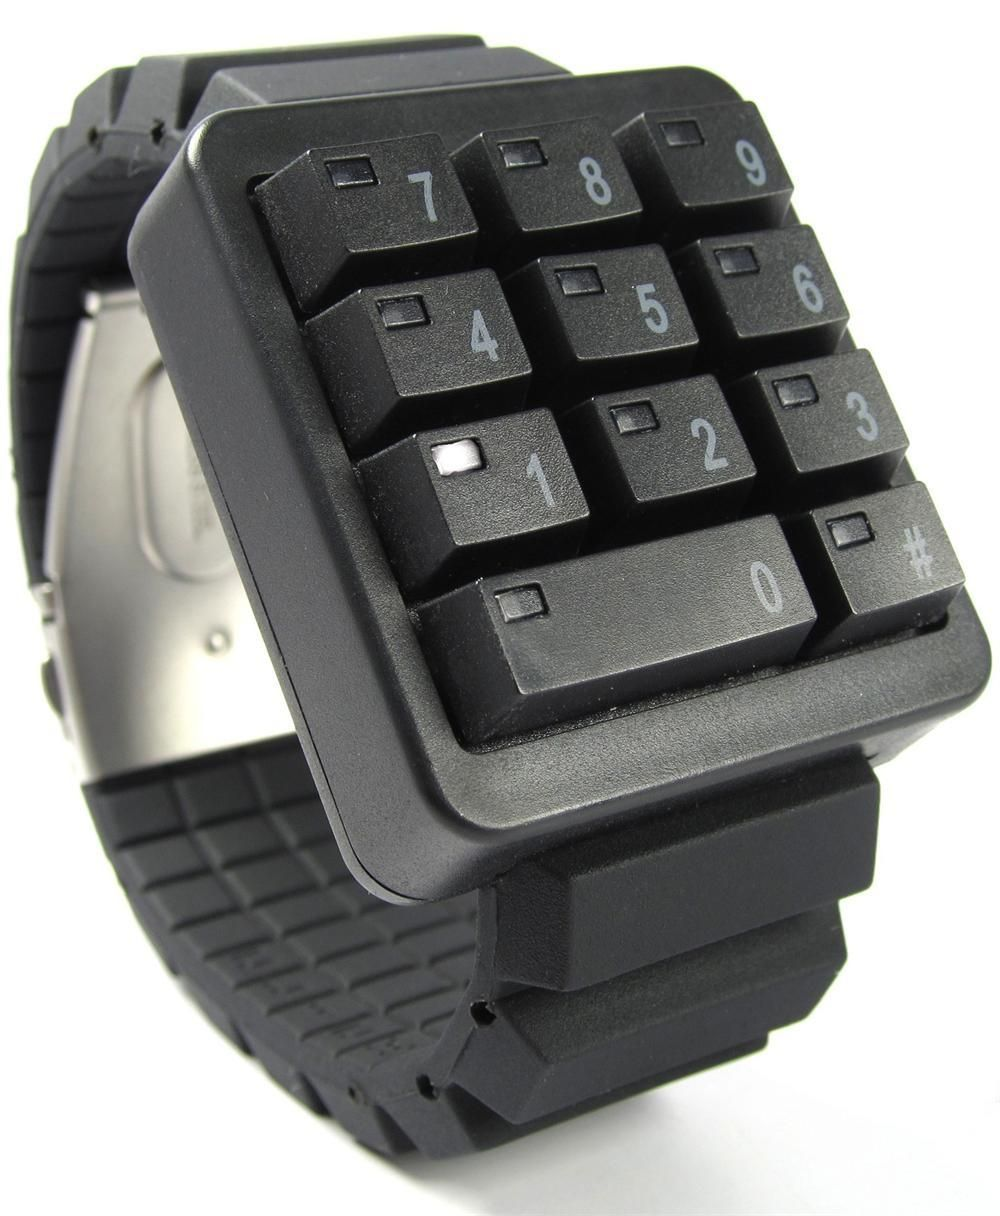 Keypad watch